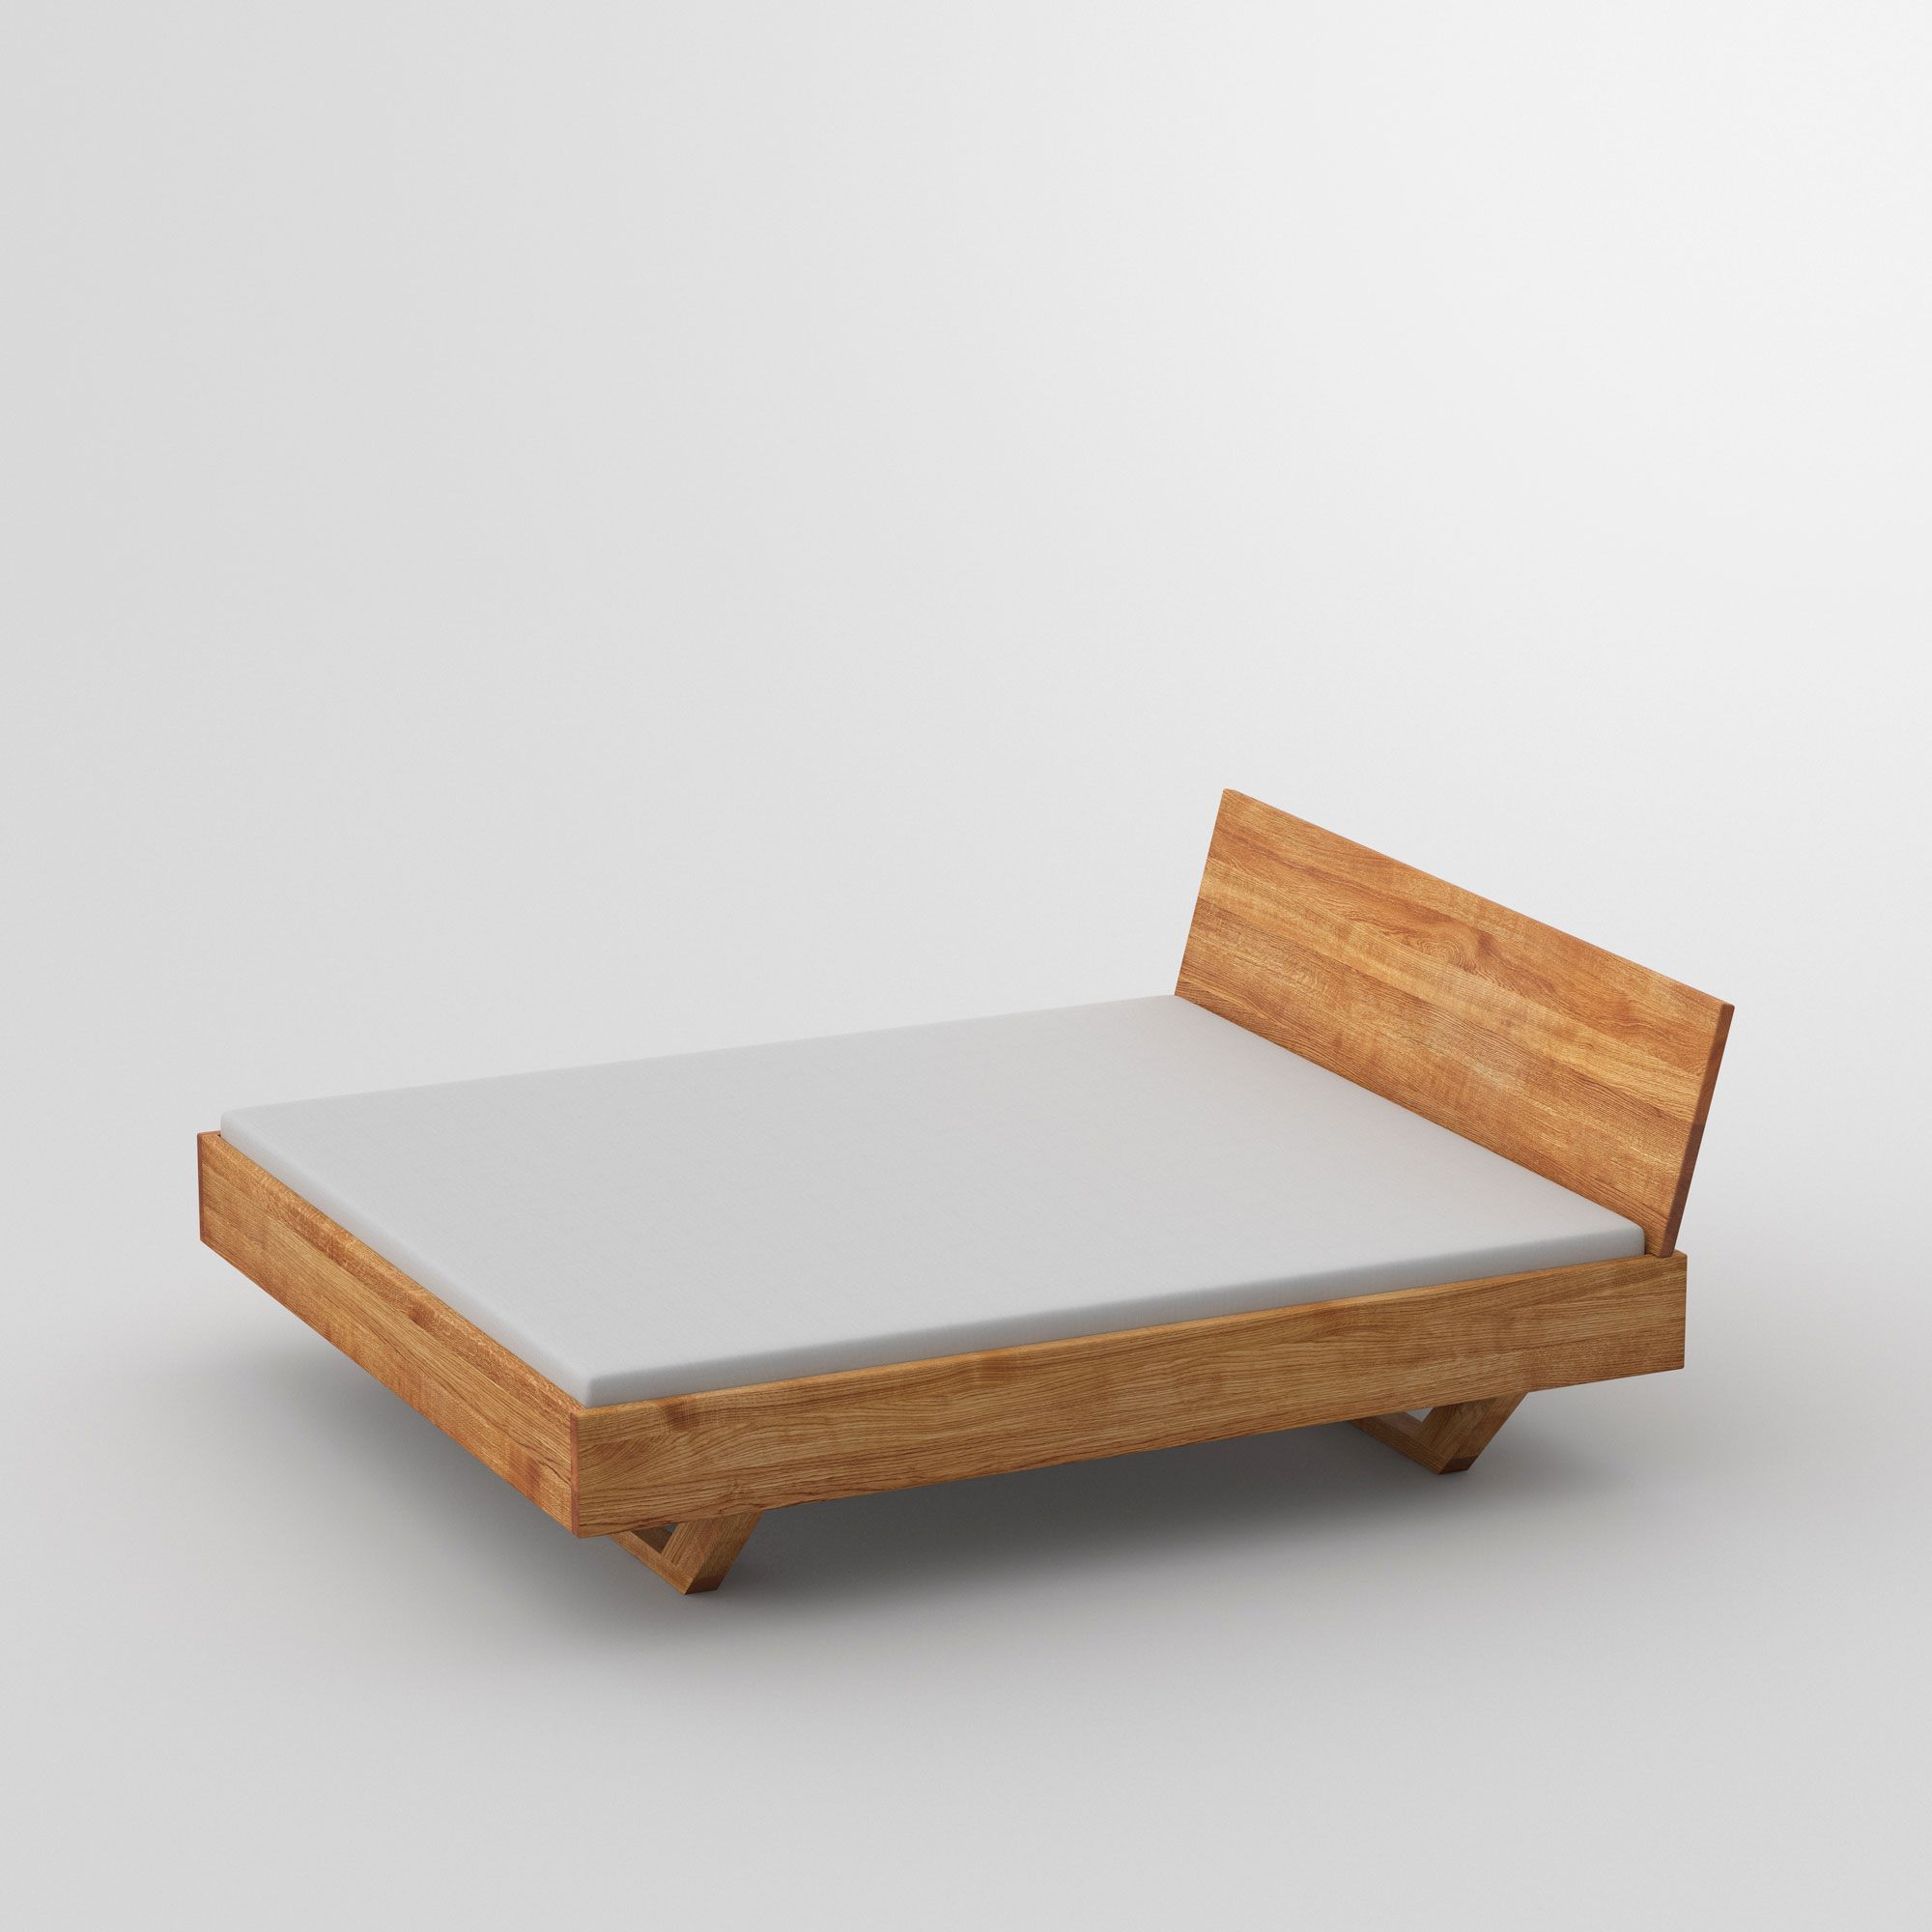 Solid Wooden Bed QUADRA SOFT cam1 custom made in solid wood by vitamin design